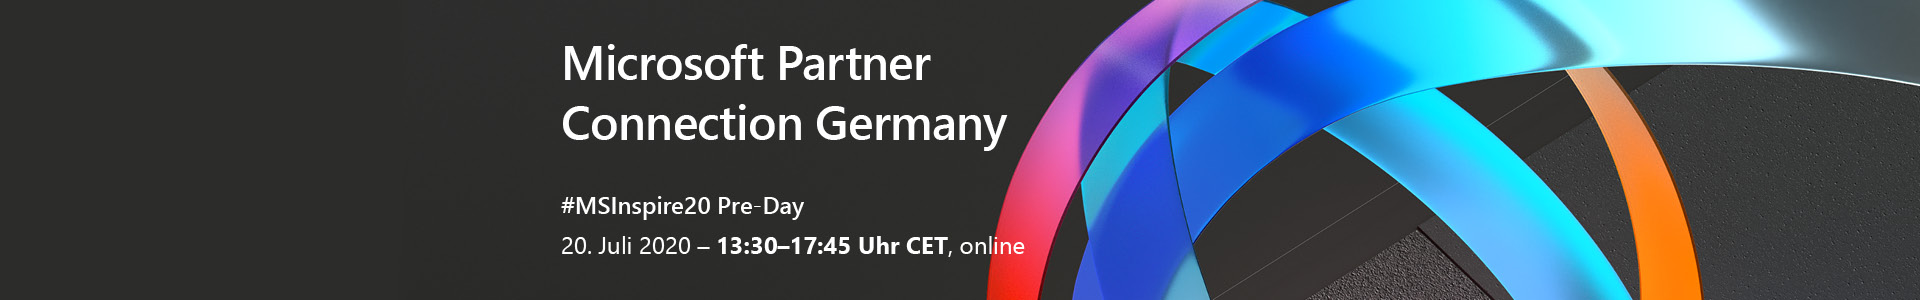 Microsoft Partner Connection Germany